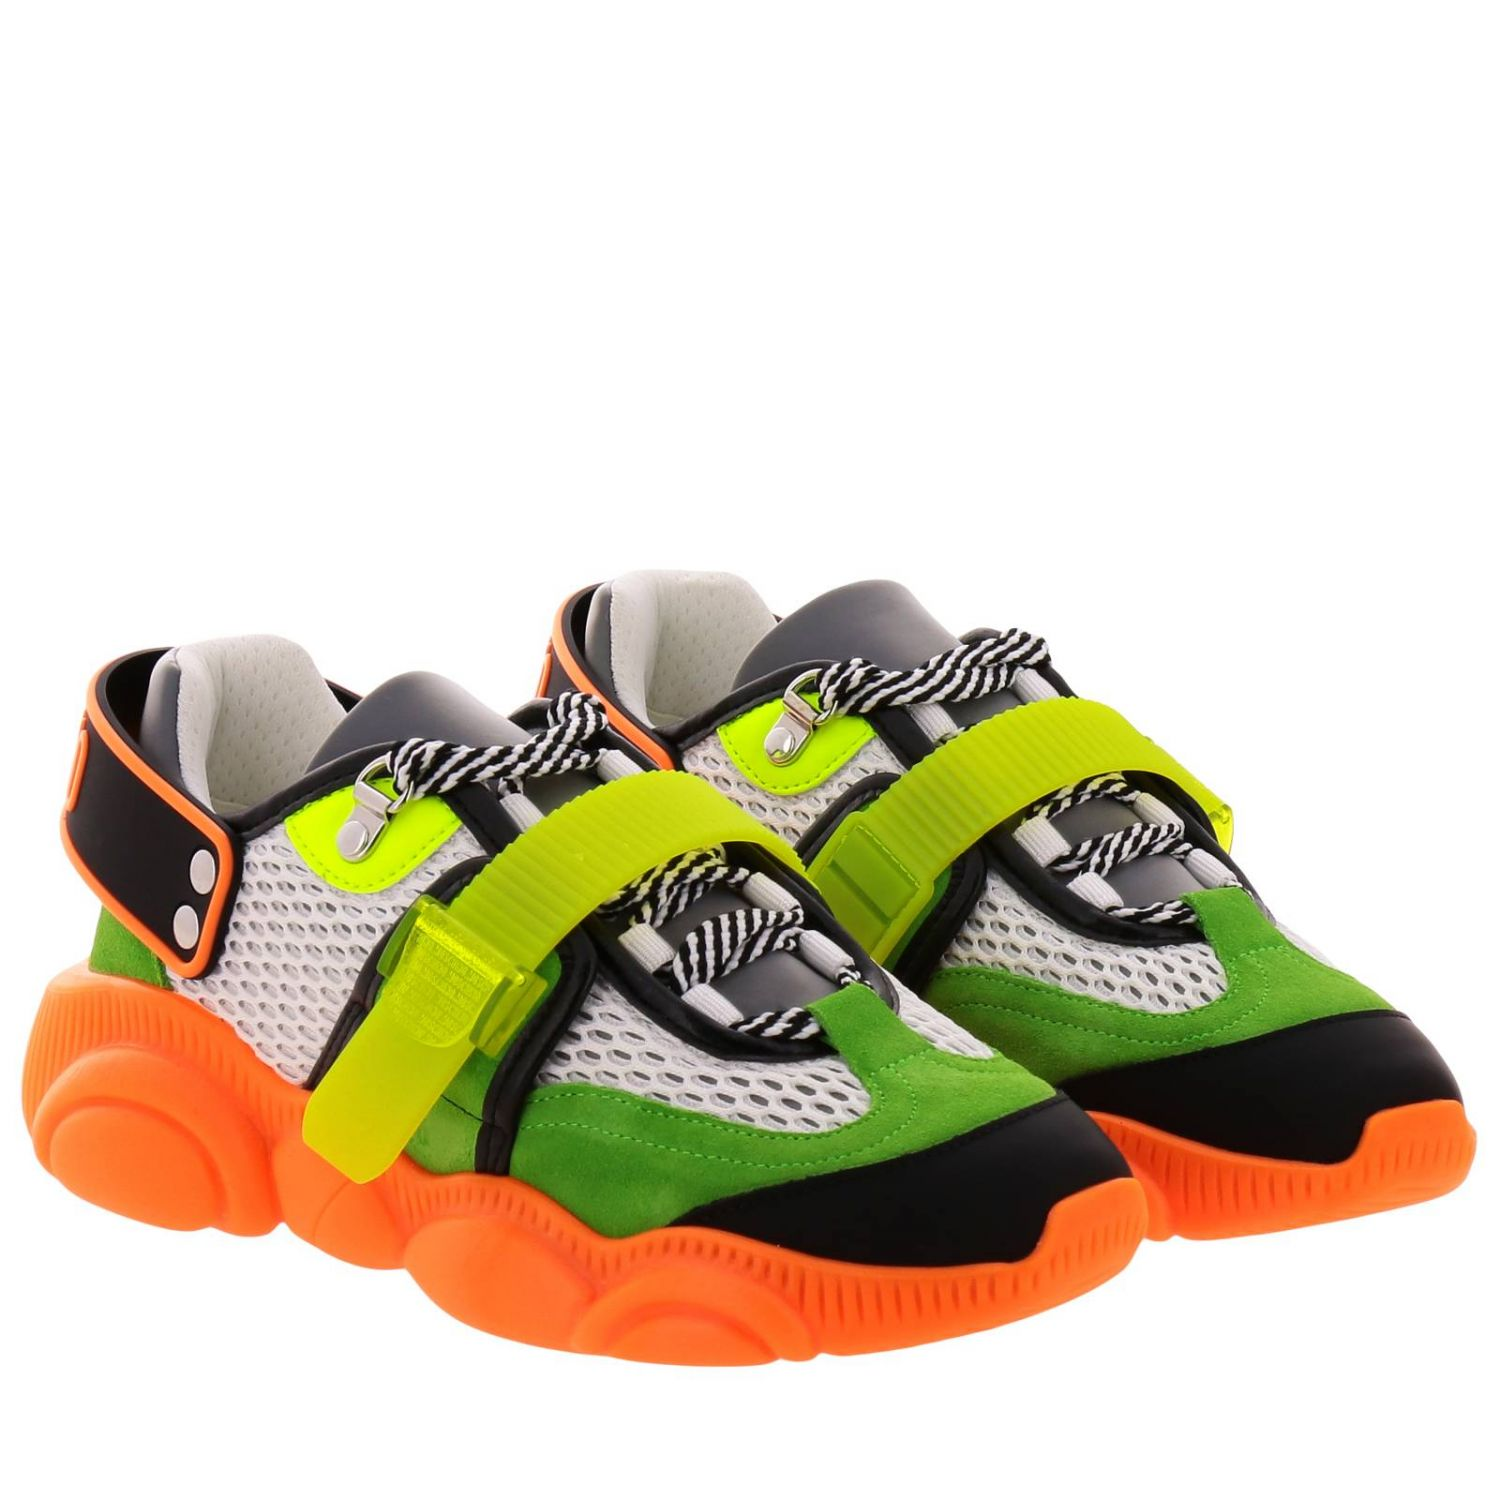 Sneakers Moschino Couture Special Edition Teddy Fluo arancione 2